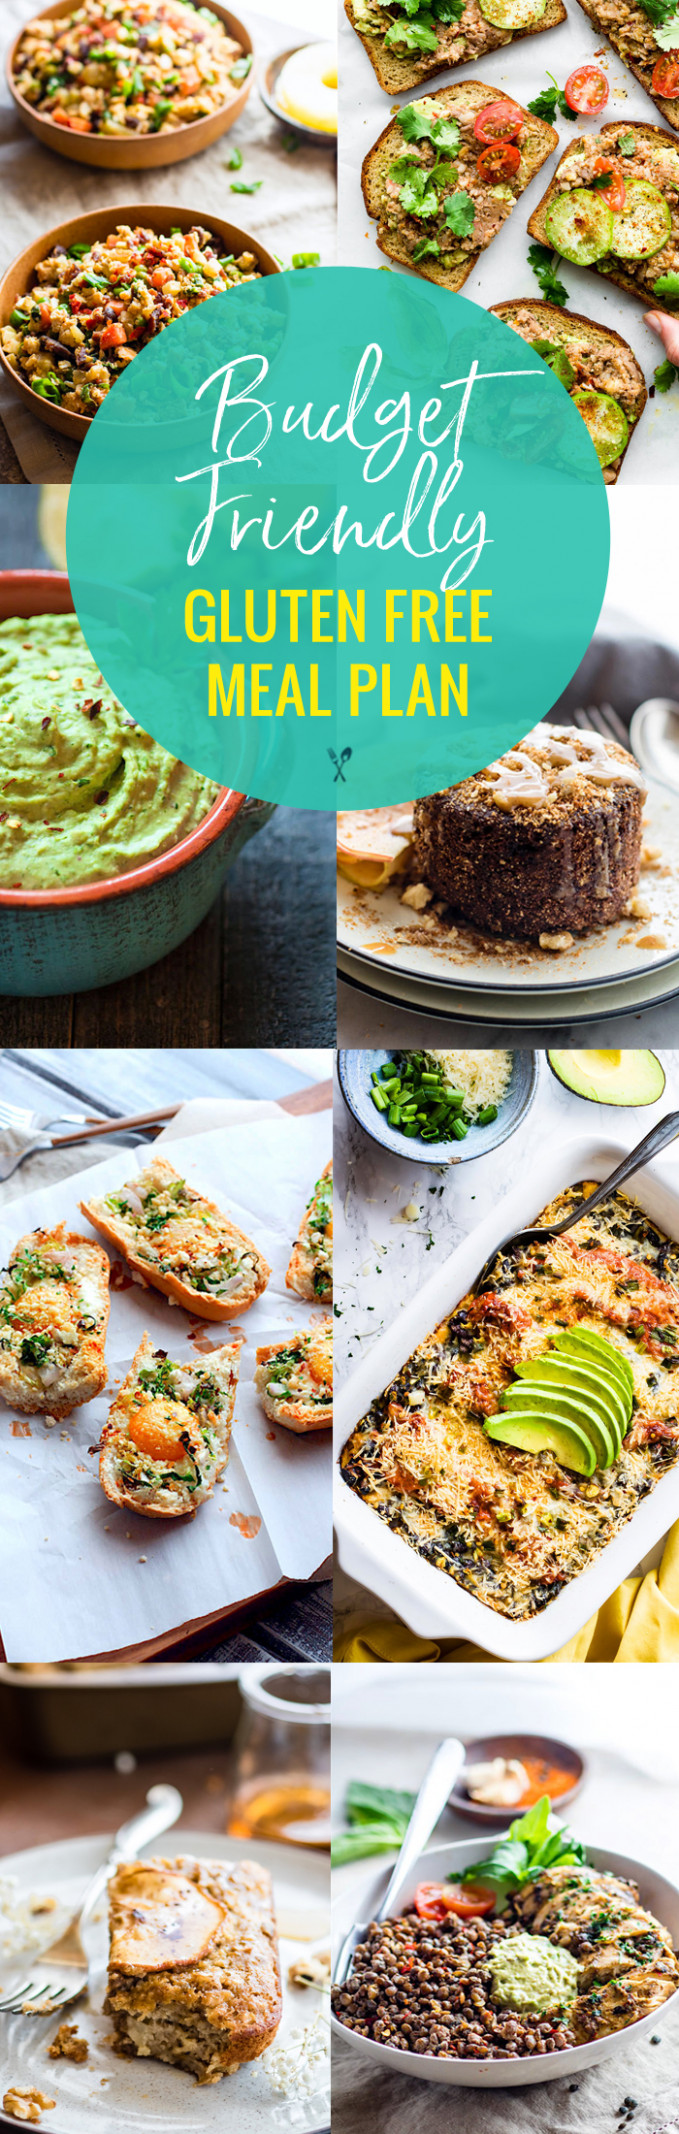 Budget Friendly Gluten Free Meal Plan | Cotter Crunch - recipes budget healthy